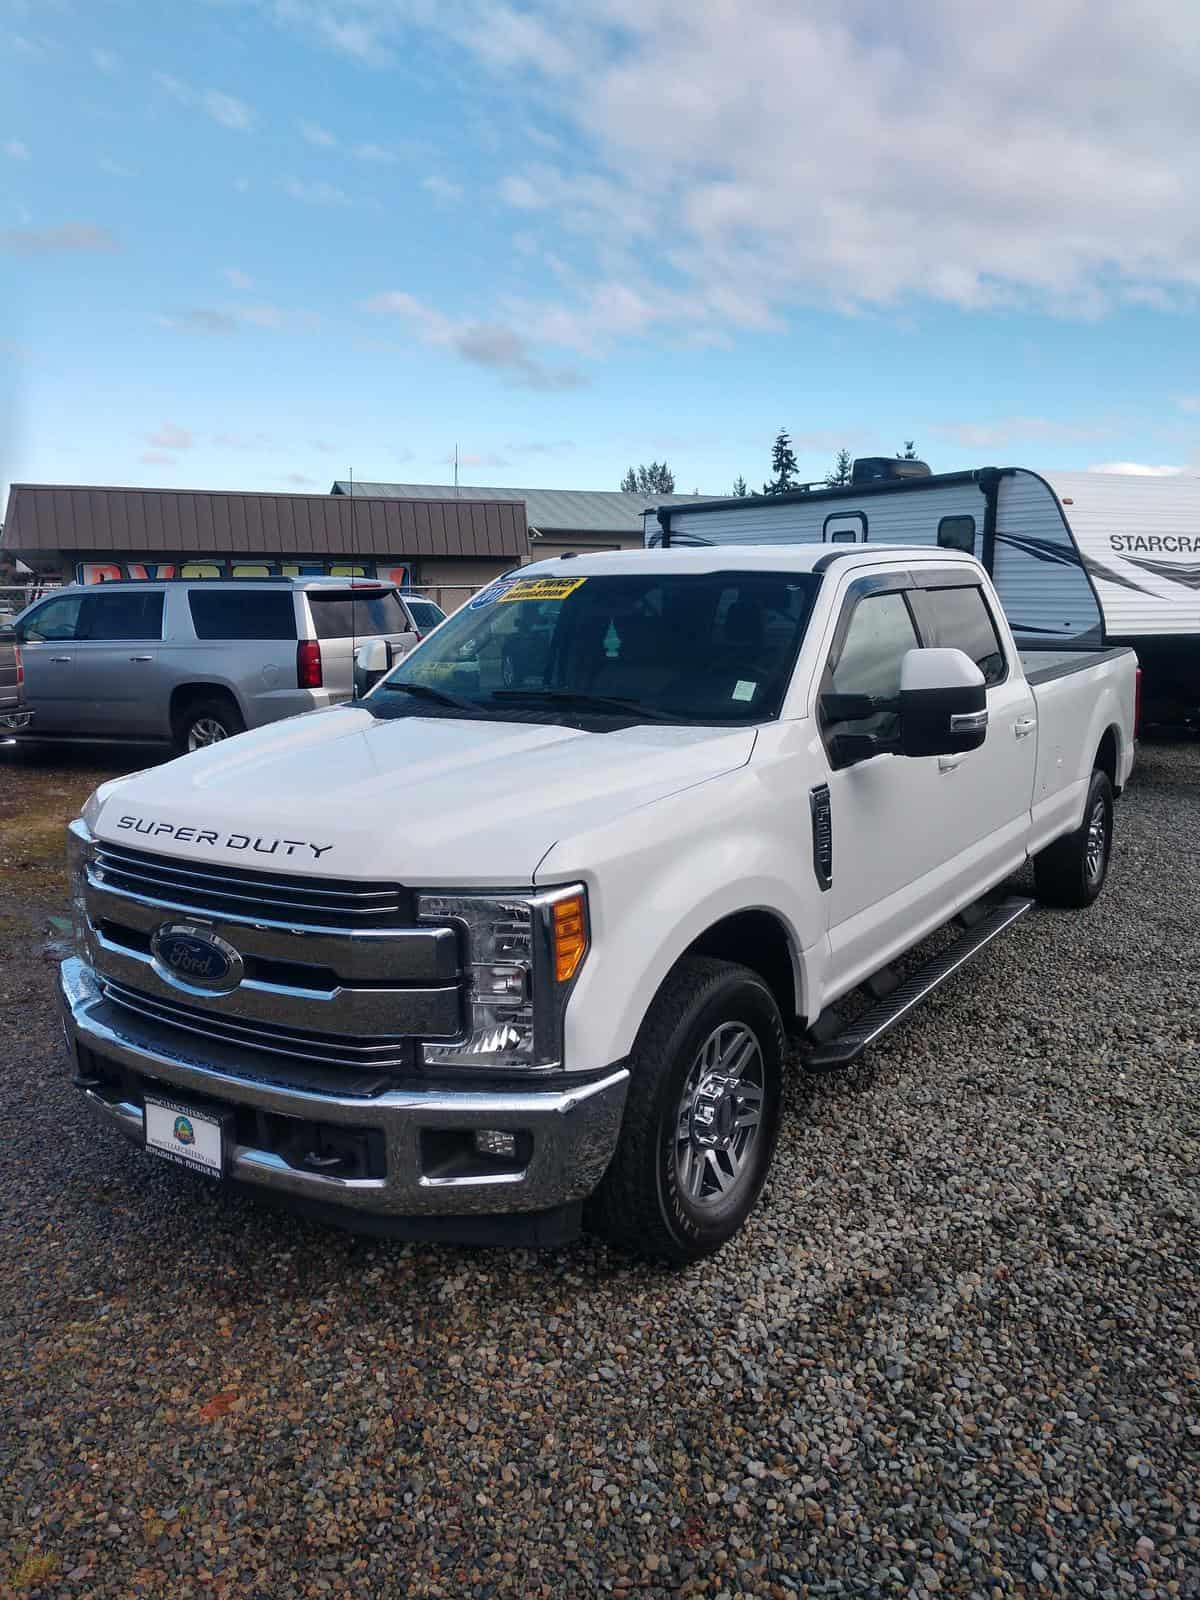 USED 2017 Ford F250SD LARIAT RWD